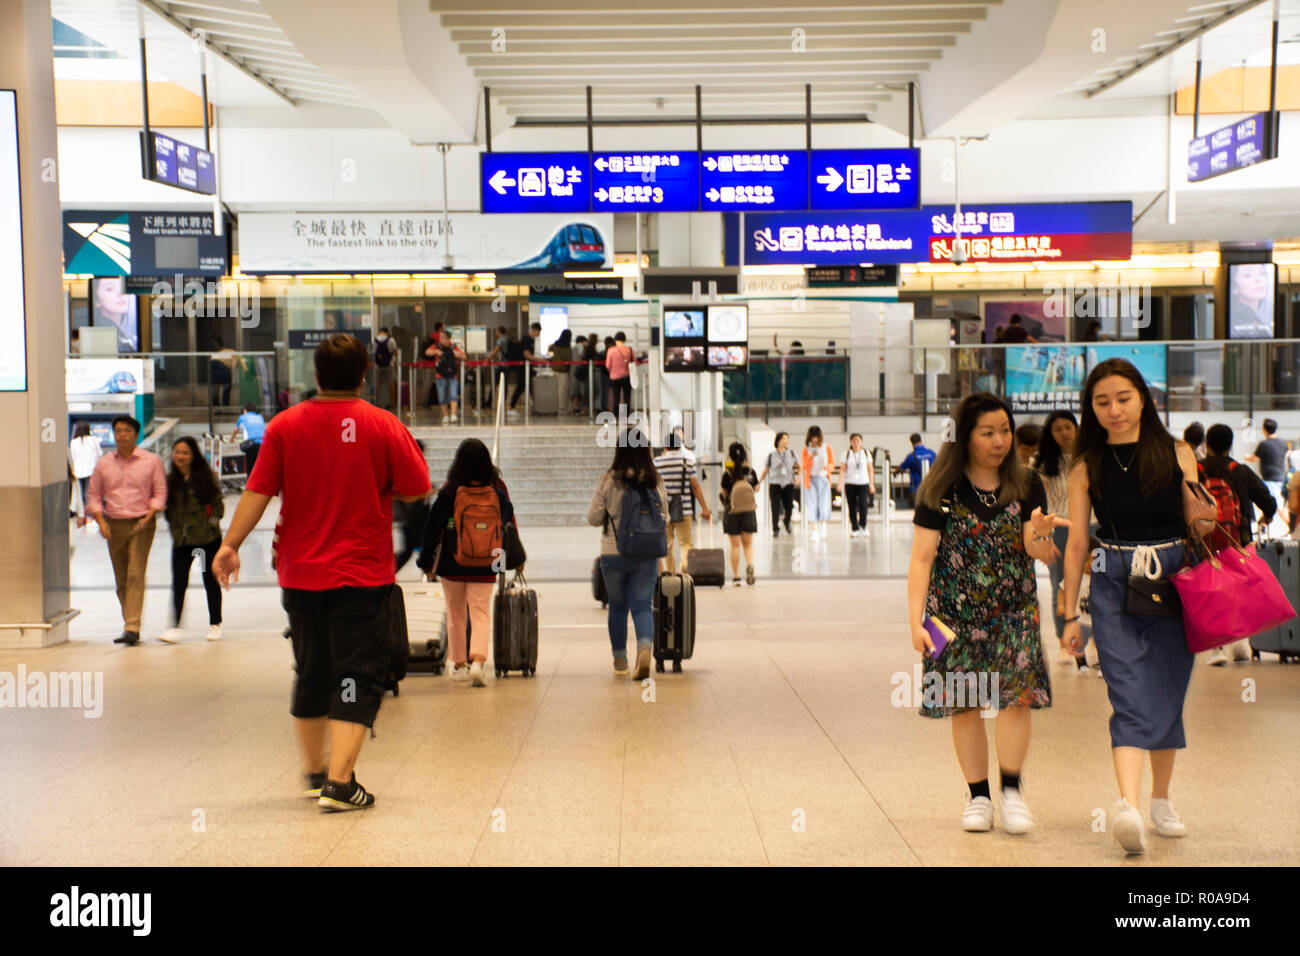 Chinese people and foreigners traveler walking in terminal of Hong Kong International Airport or Chek Lap Kok Airport on September 3, 2018 in Hong Kon - Stock Image